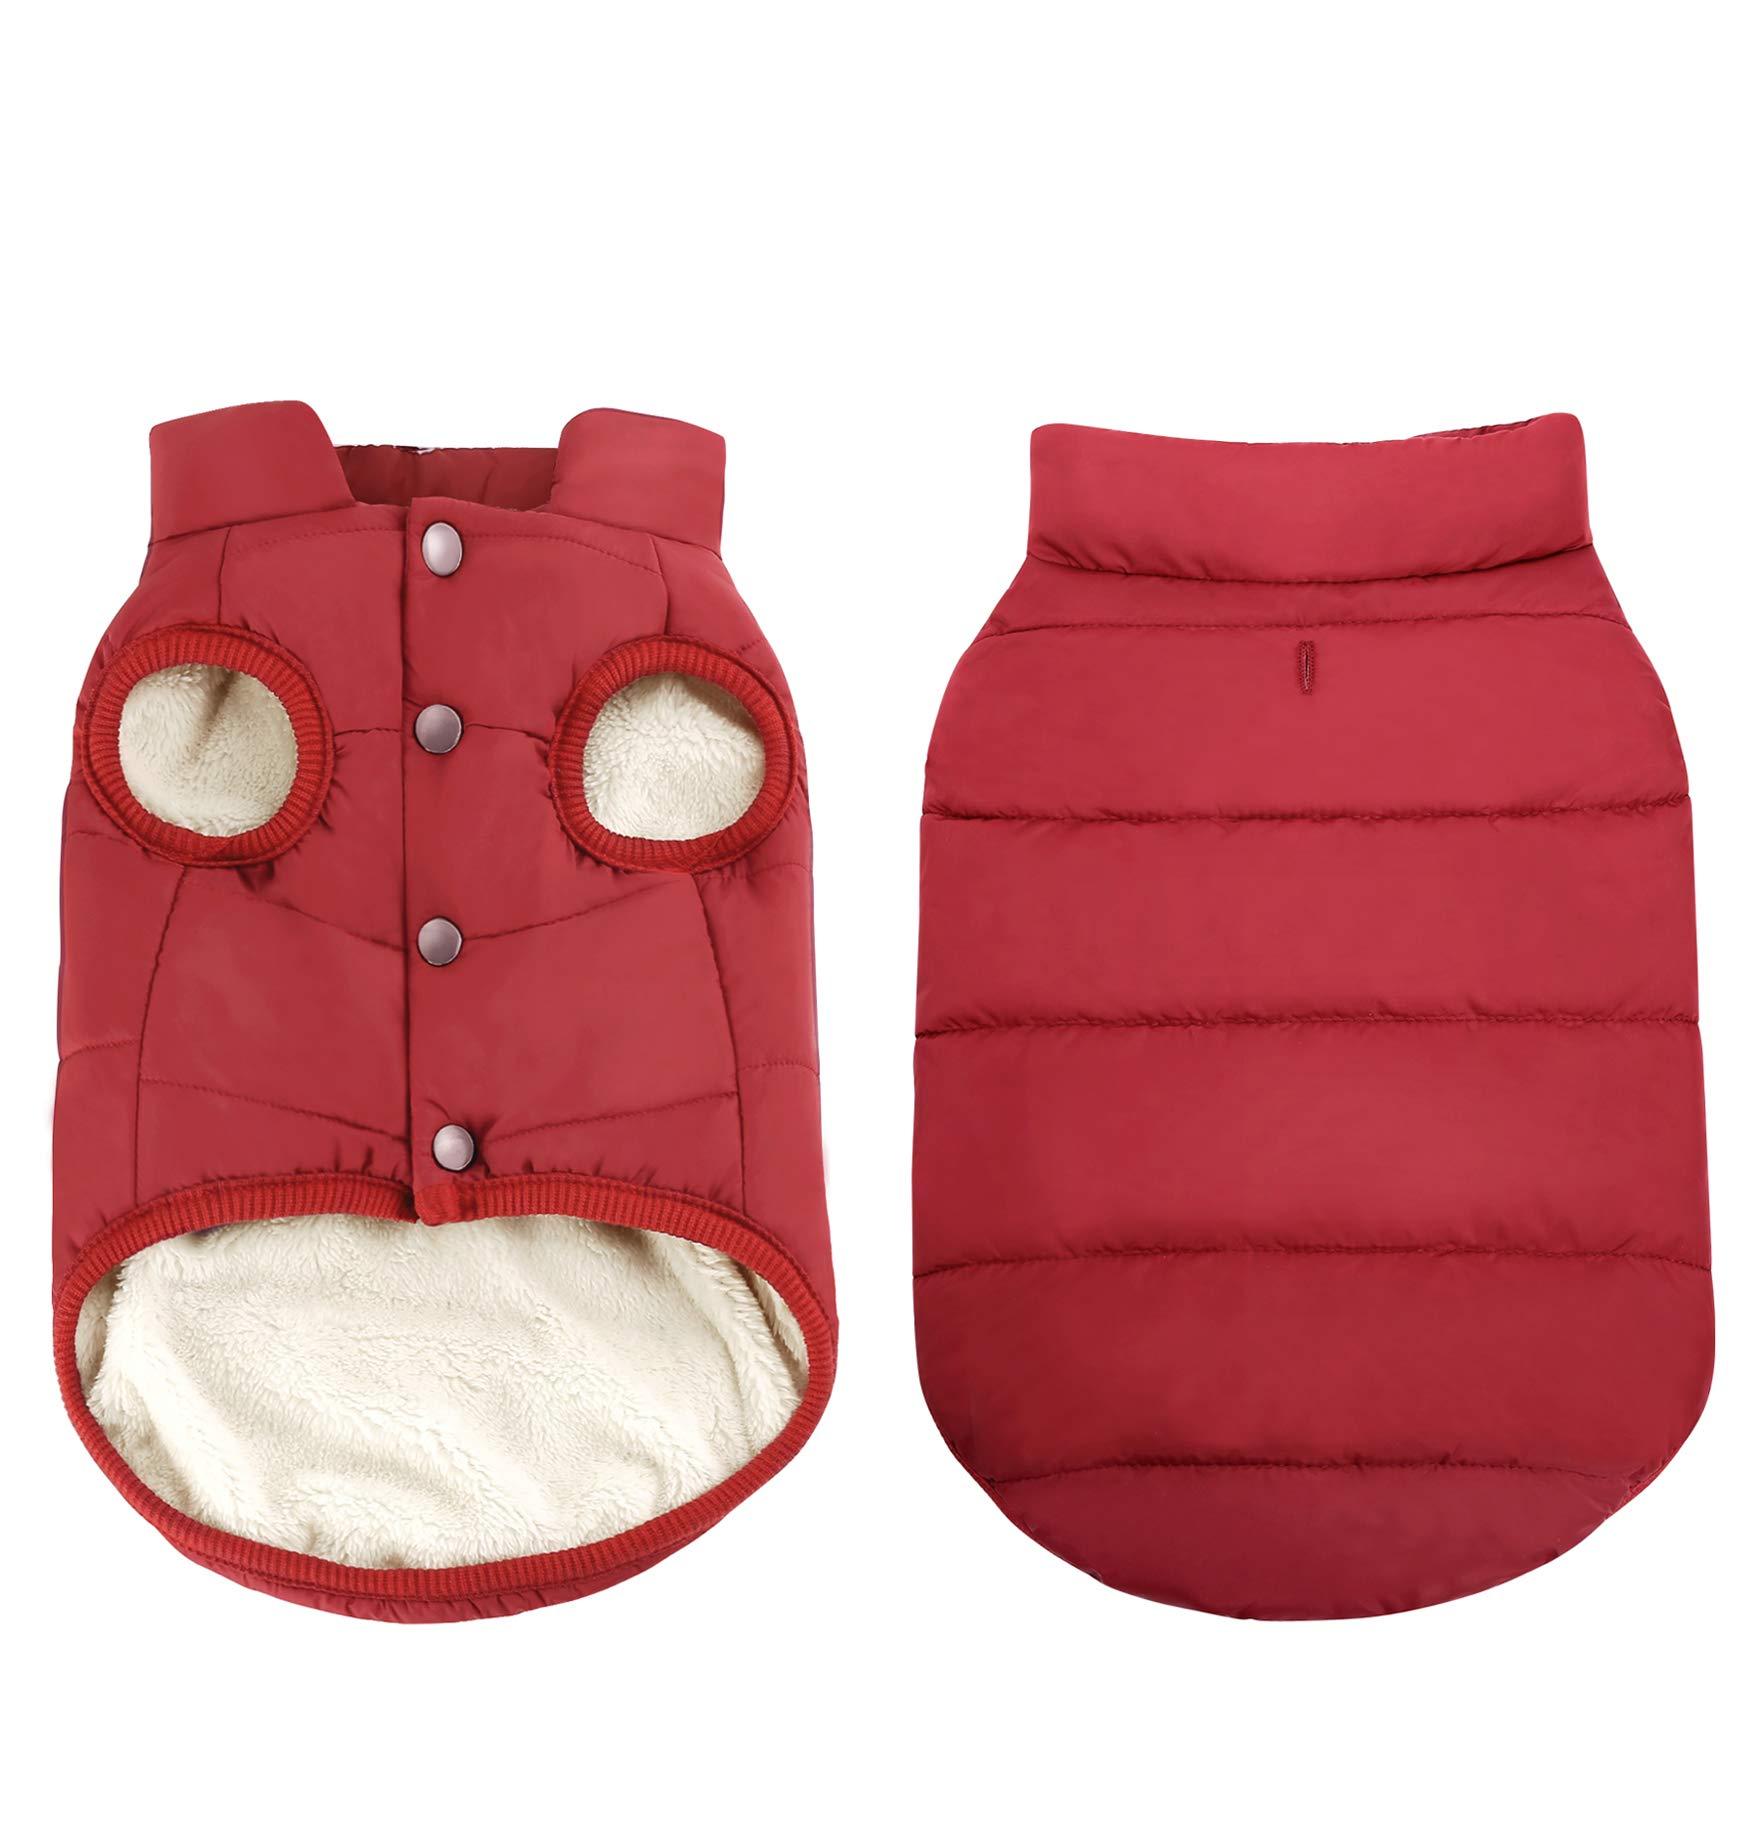 ASENKU Windproof Dog Winter Coat Waterproof Dog Jacket Warm Dog Vest Cold Weather Pet Apparel with 2 Layers Fleece Lined for Small Medium Large Dogs